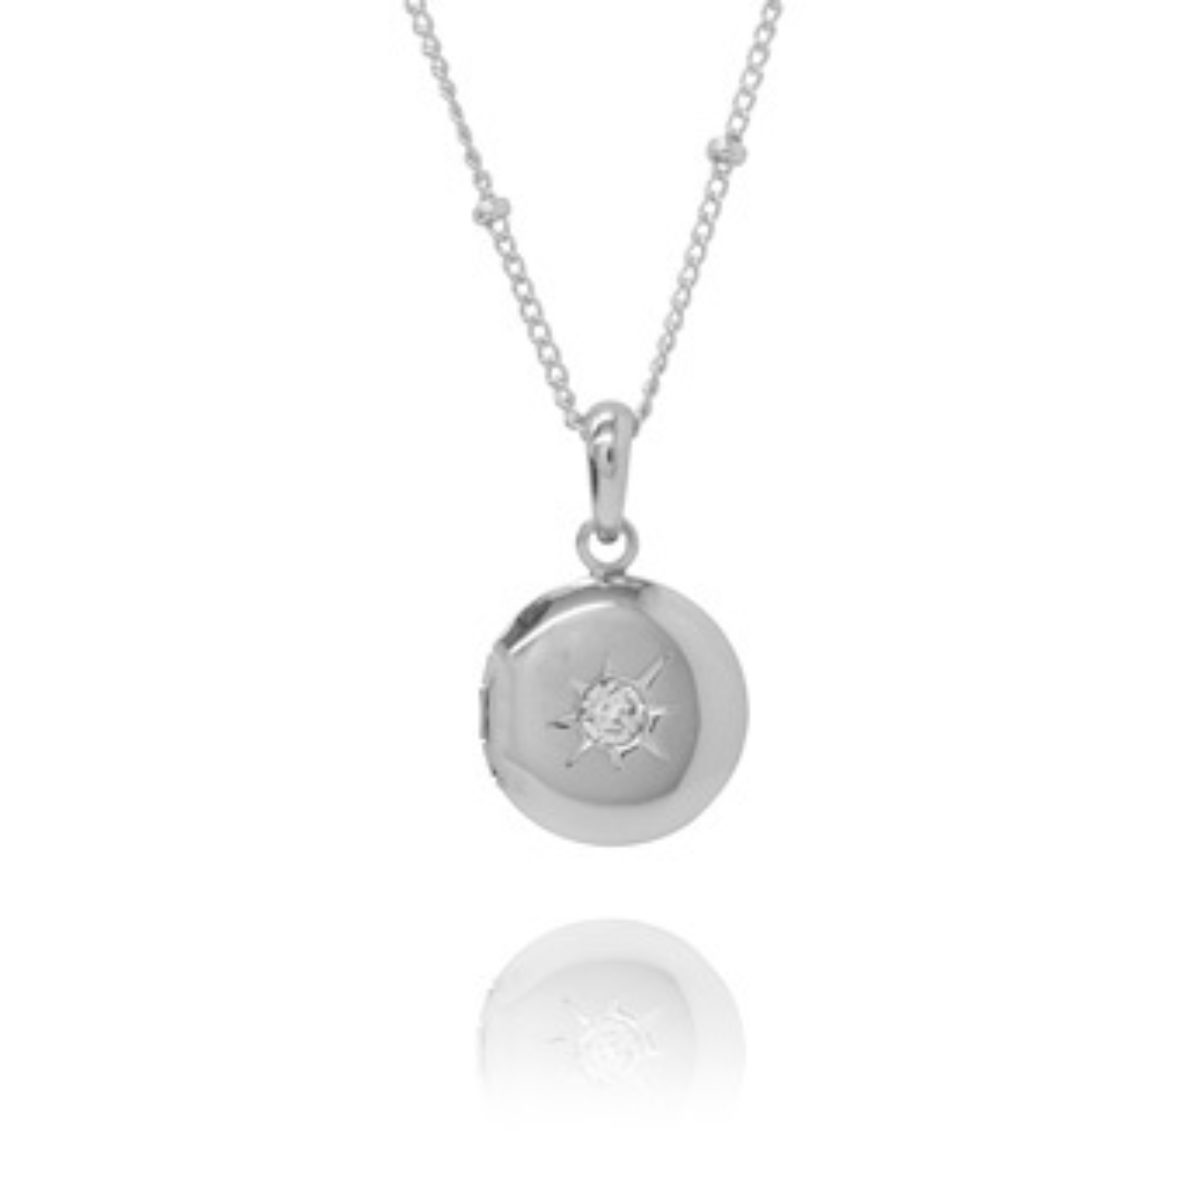 Symbolic jewellery meanings charm meanings symbolic locket charm necklace in silver aloadofball Images